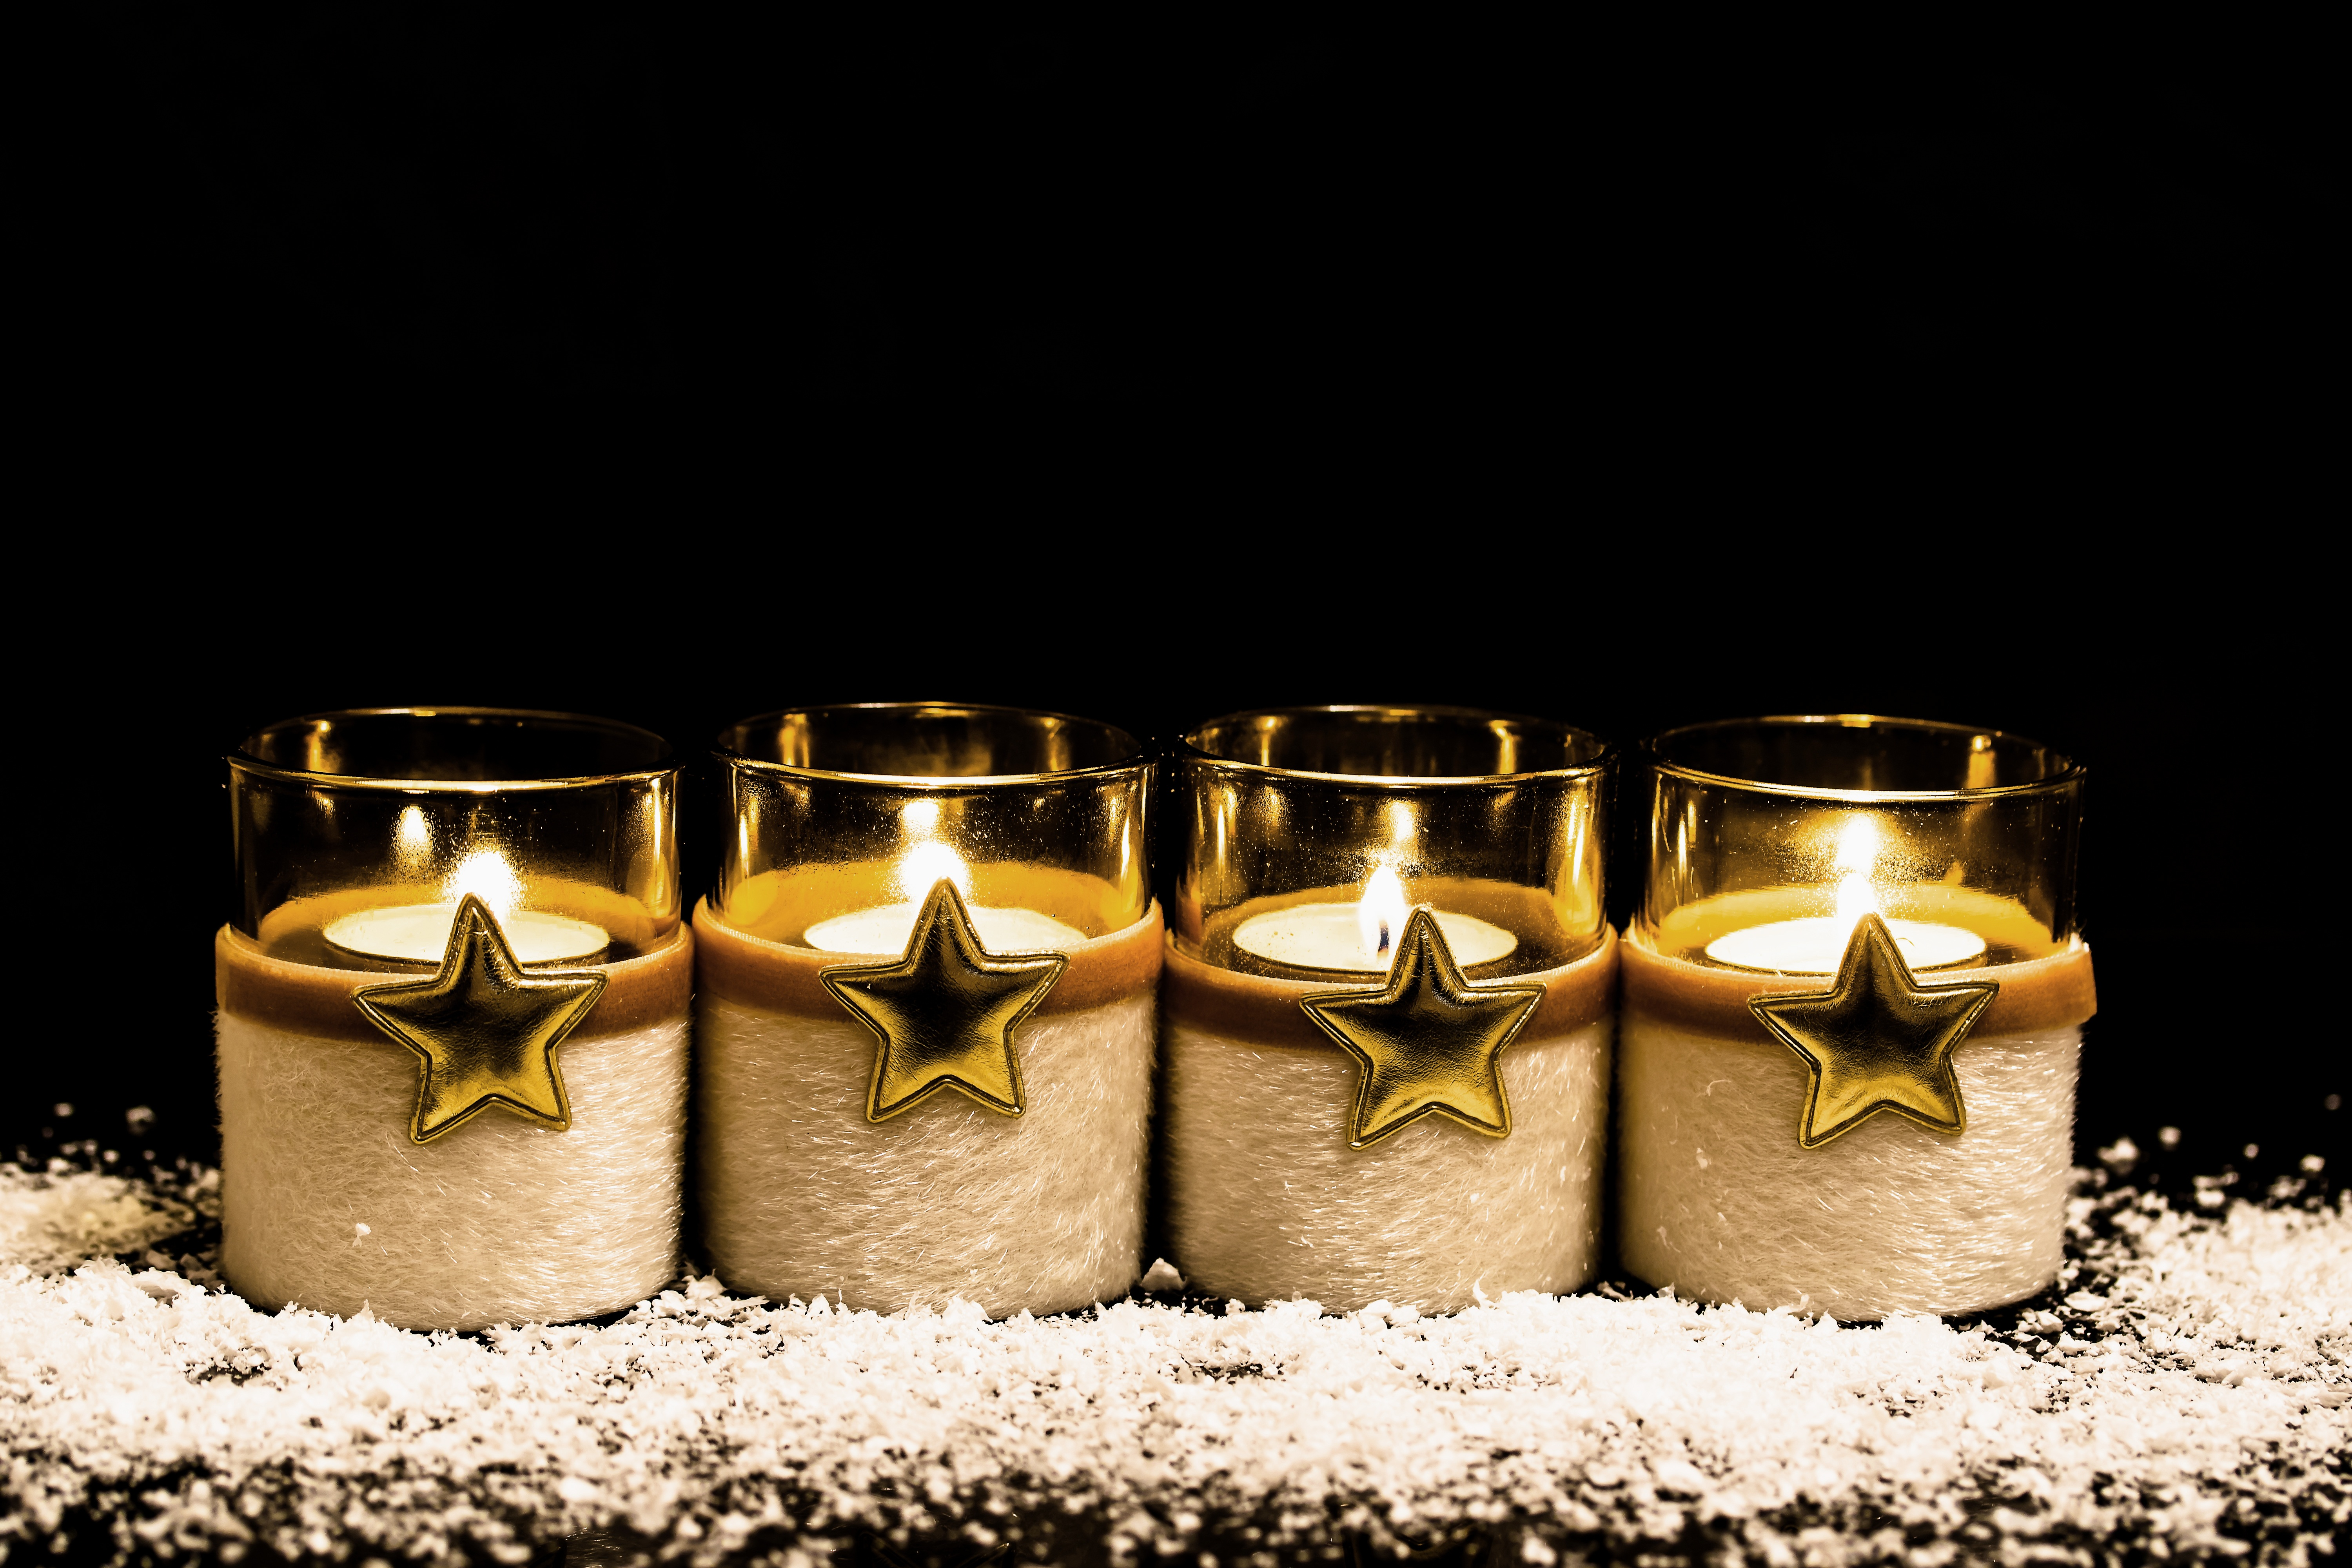 121777 Screensavers and Wallpapers Candles for phone. Download Stars, Candles, Miscellanea, Miscellaneous, Tinsel, Sequins, Wax pictures for free